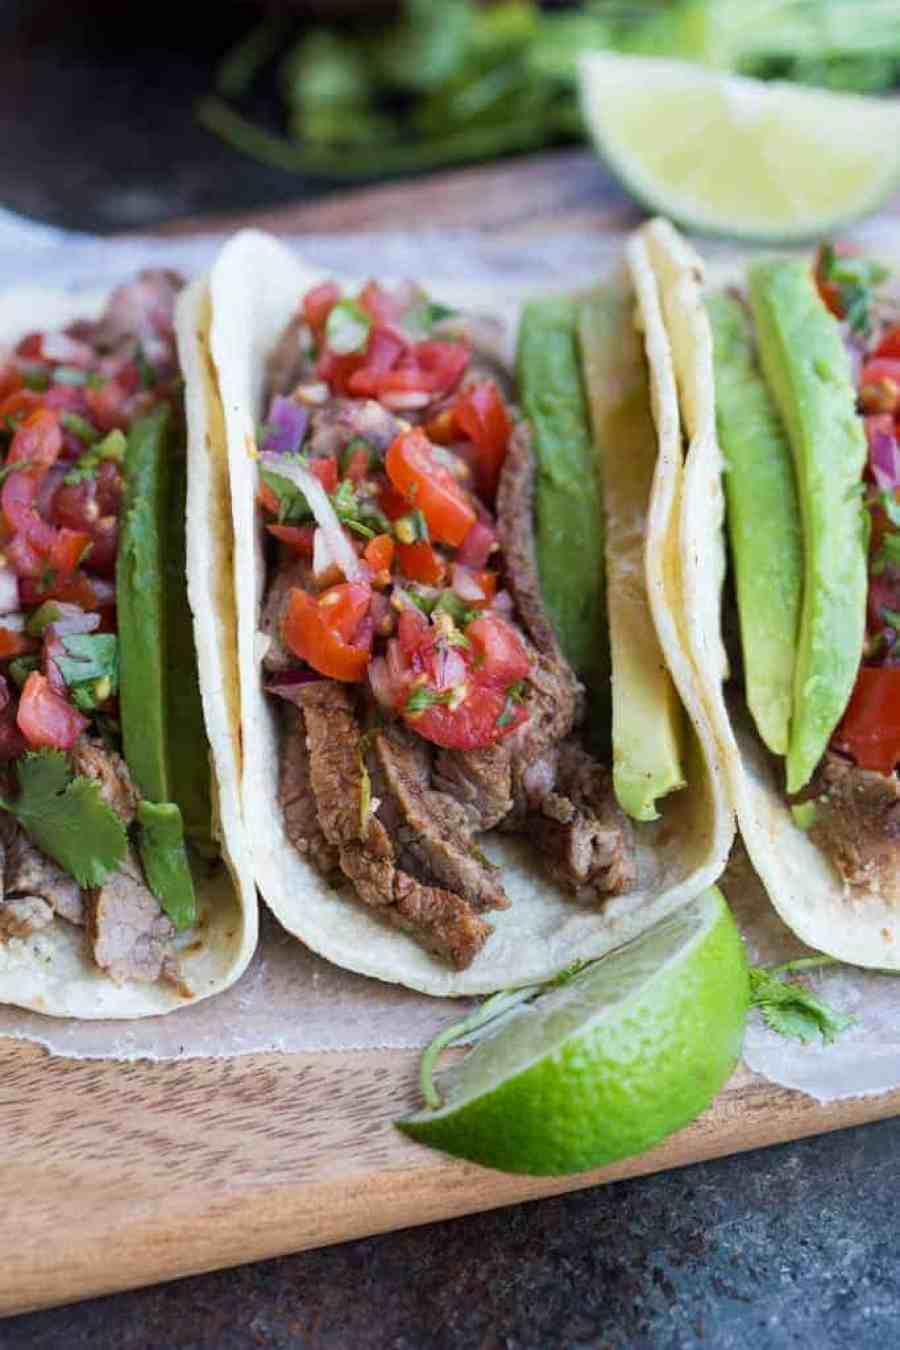 Carne Asada Tacos just as good as ones you could buy off the street in Mexico! Juicy, tender, marinated steak tacos served on a warm corn tortilla with fresh pico de gallo and avocado.   tastesbetterfromscratch.com